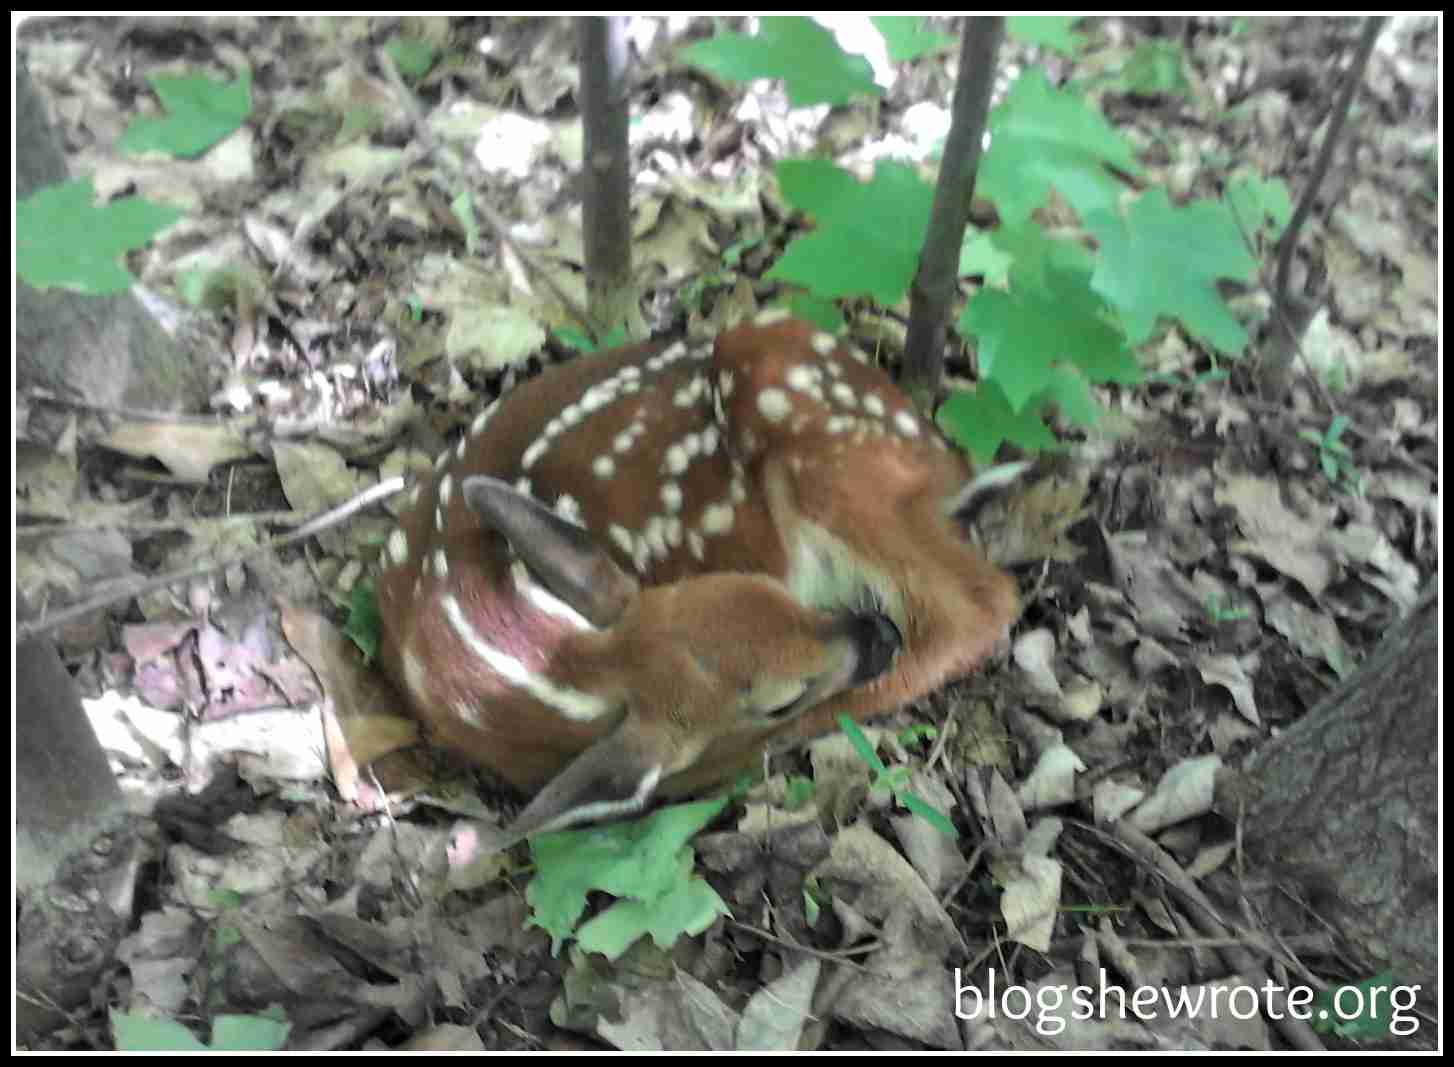 Blog She Wrote: Implementing a Nature Study- Watch Your Own Backyard